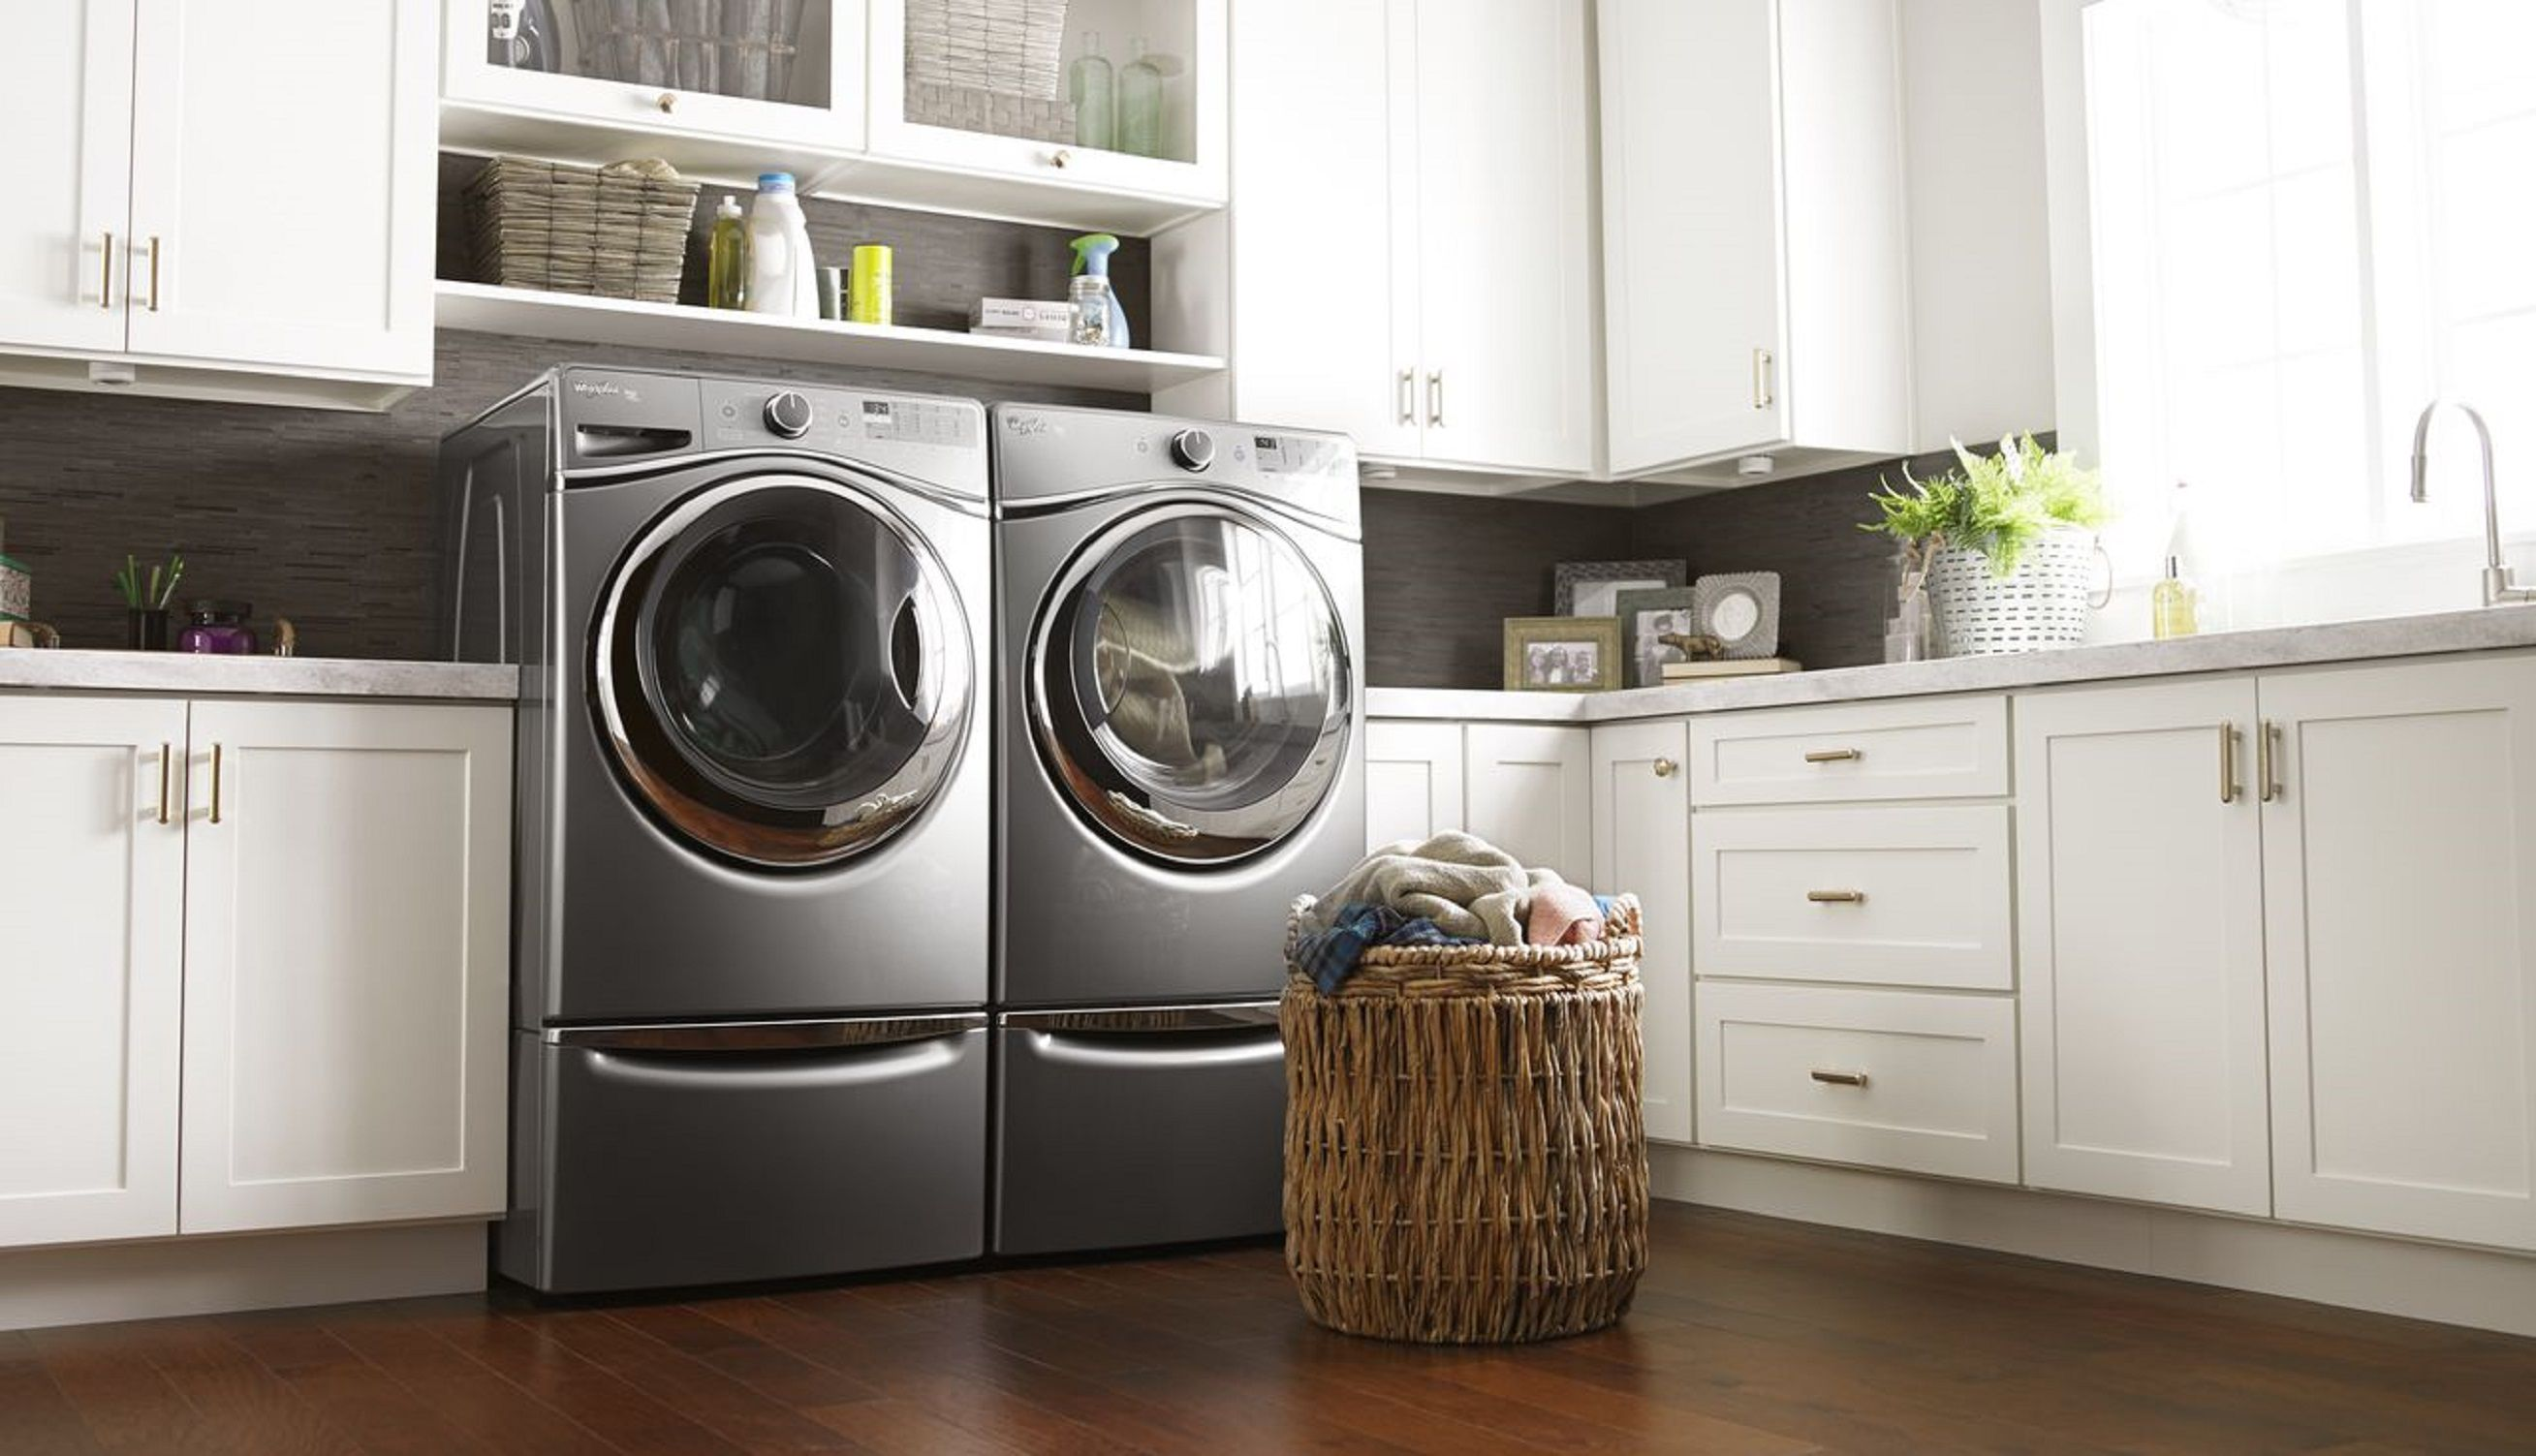 Appliance repair companies Poughkeepsie ny